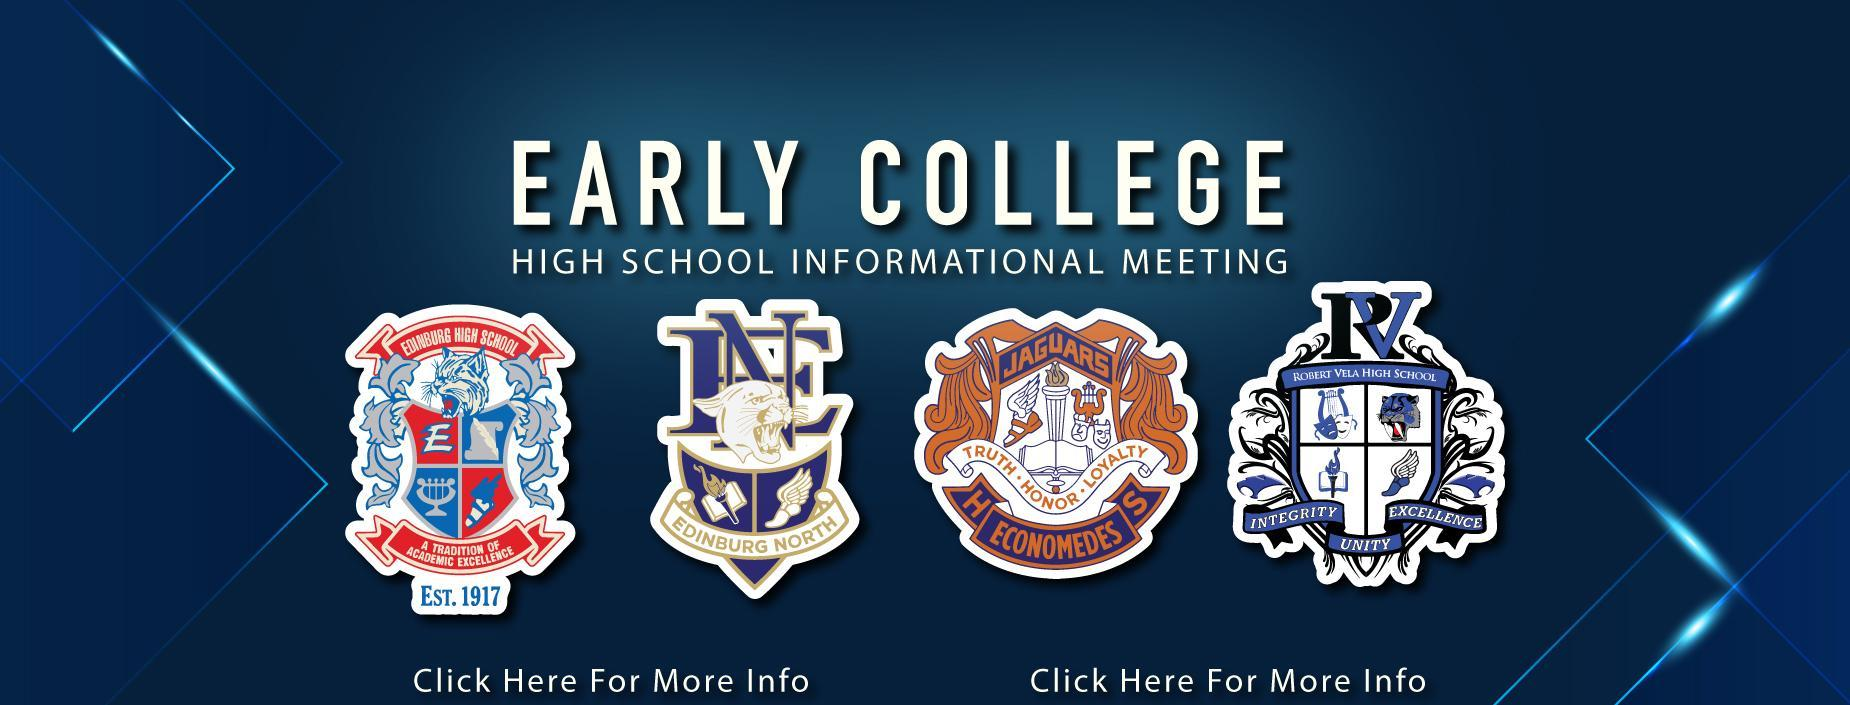 early college high school informational meeting.  click for more information.